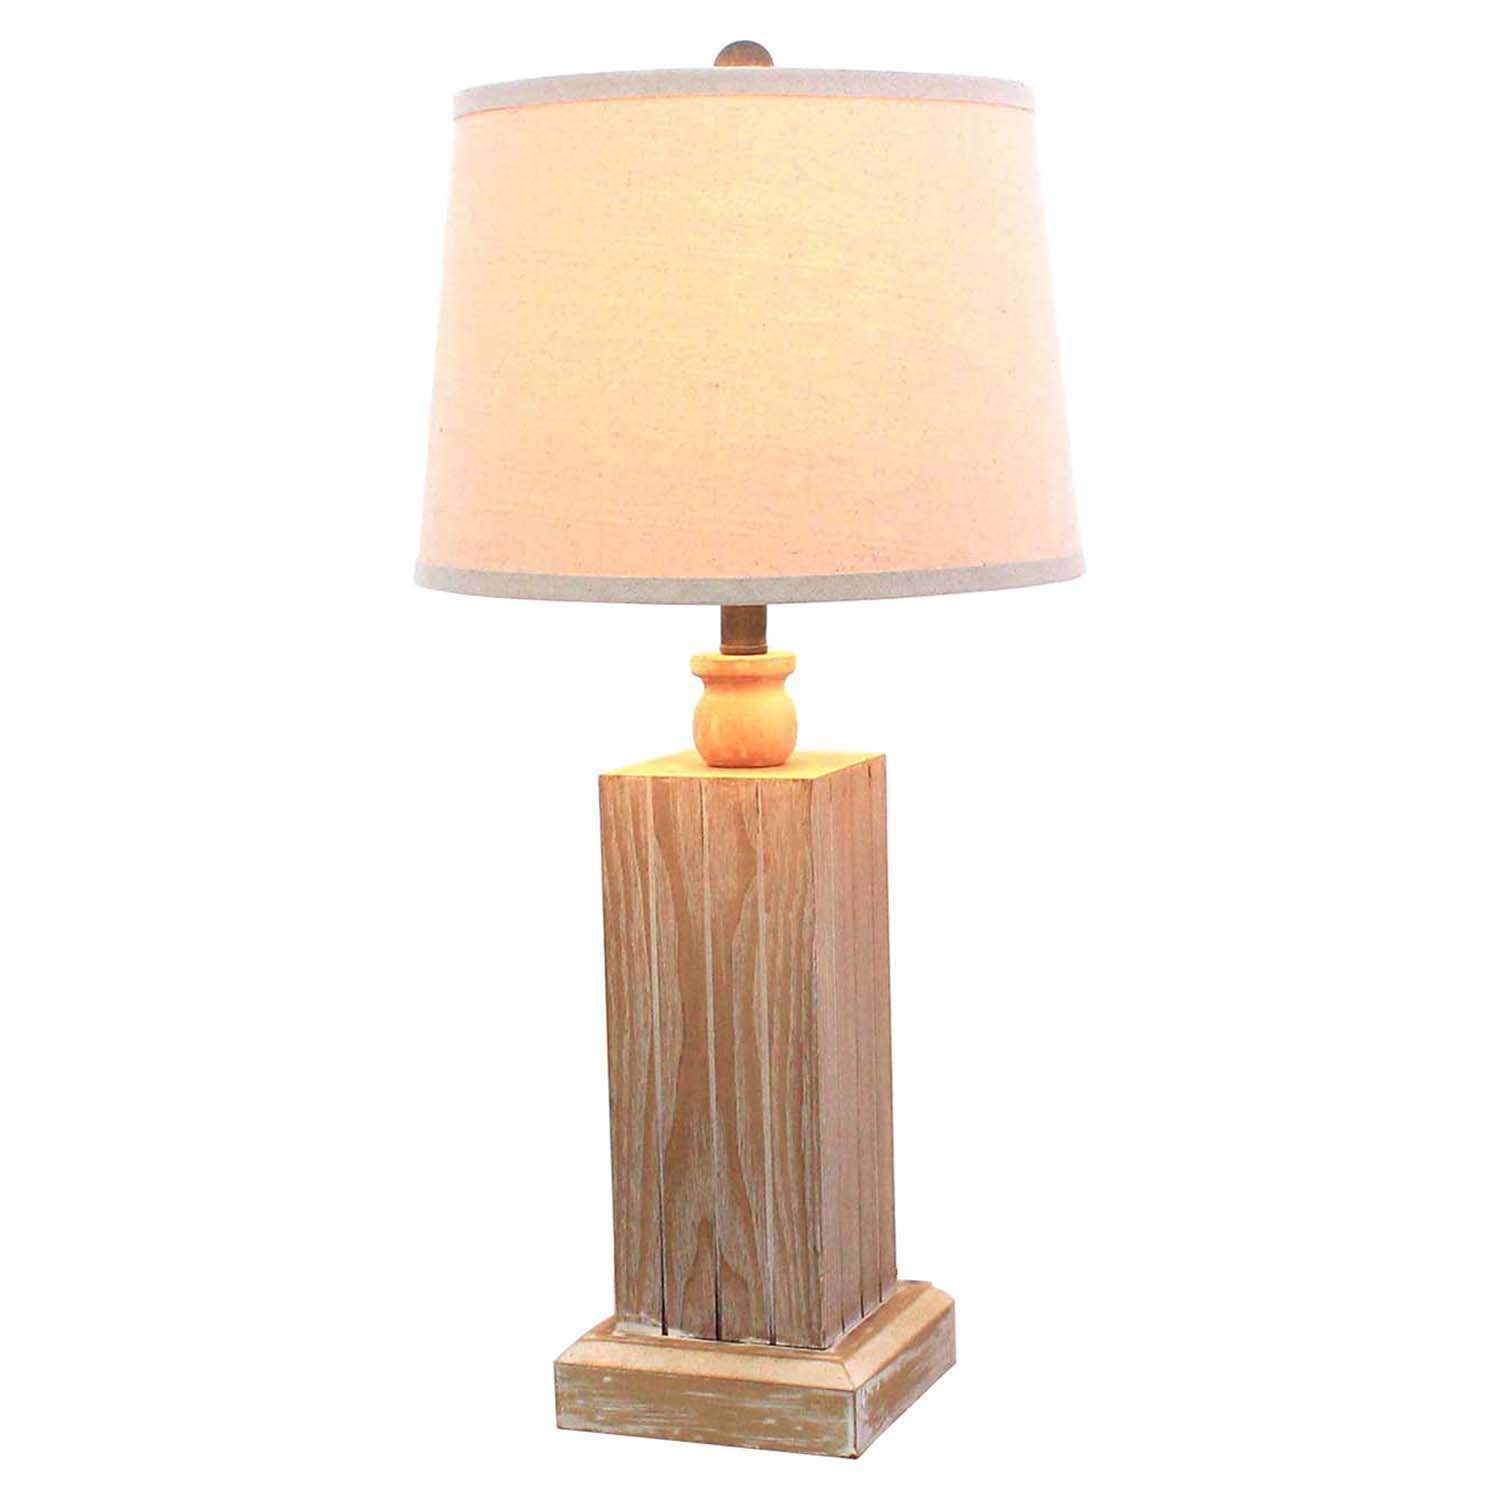 Distressed wood table lamp set of 2 dcg stores for Wood table lamps